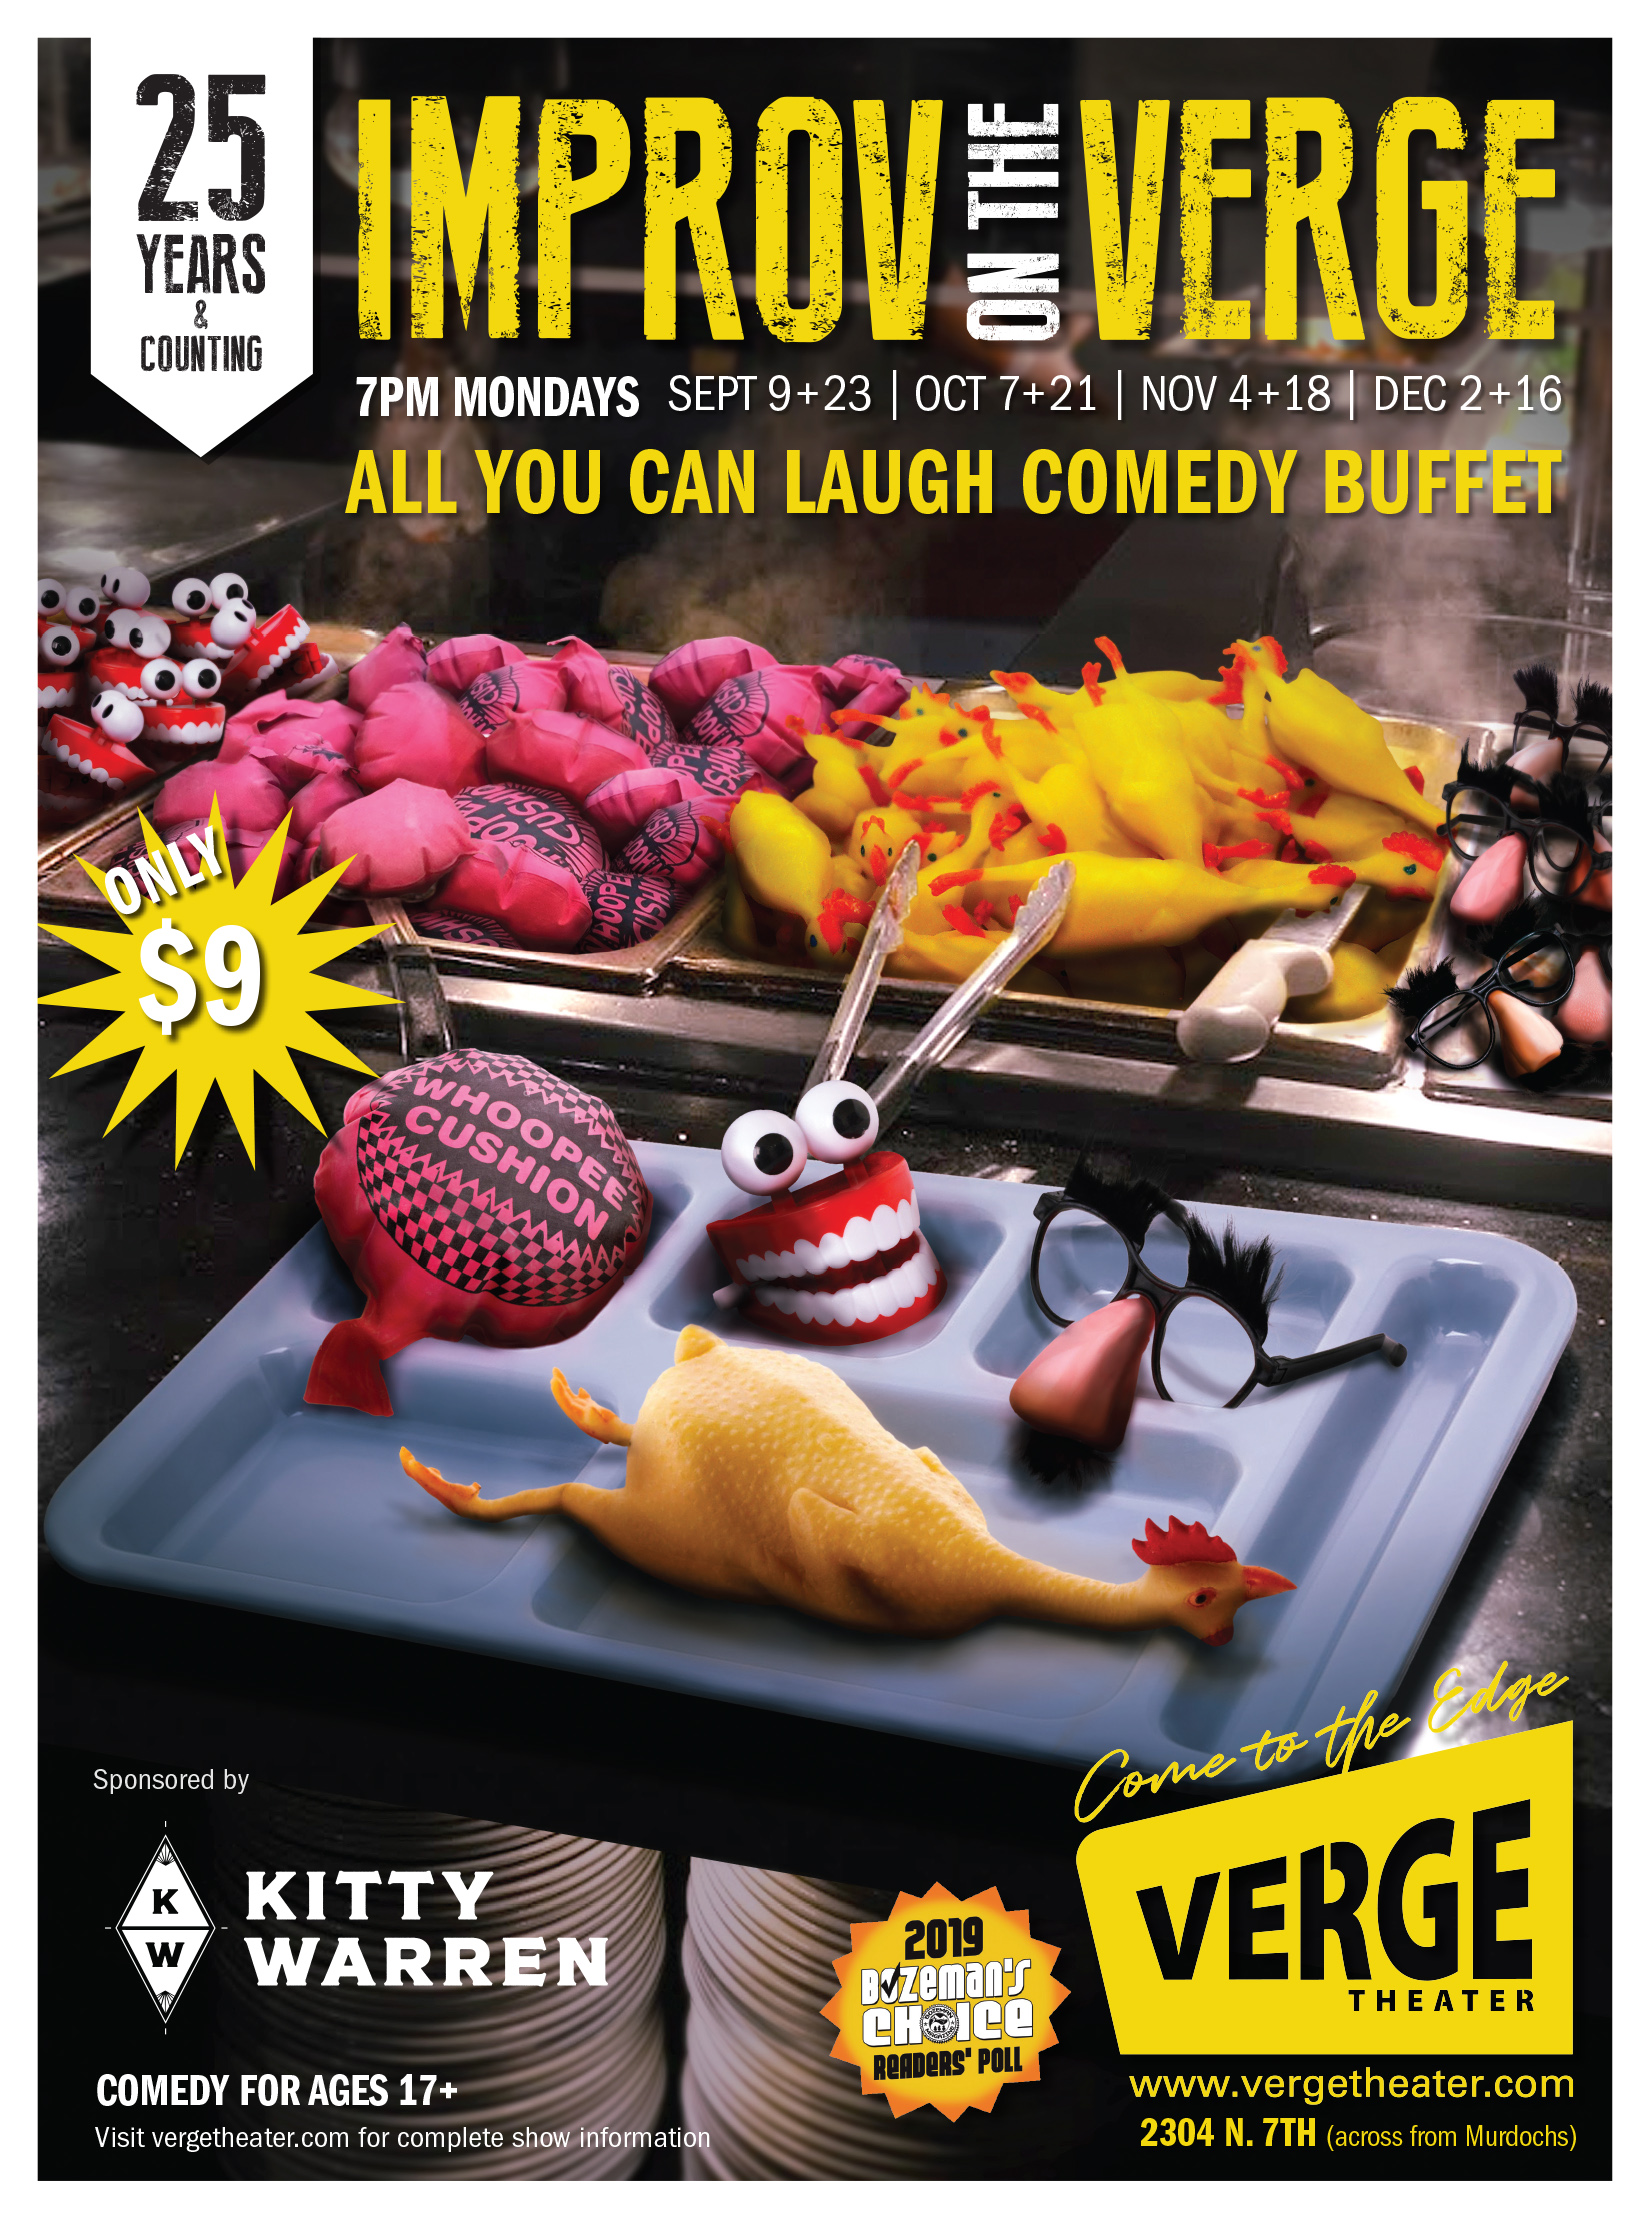 Improv on the Verge Poster 2020 11x17 for website.jpg